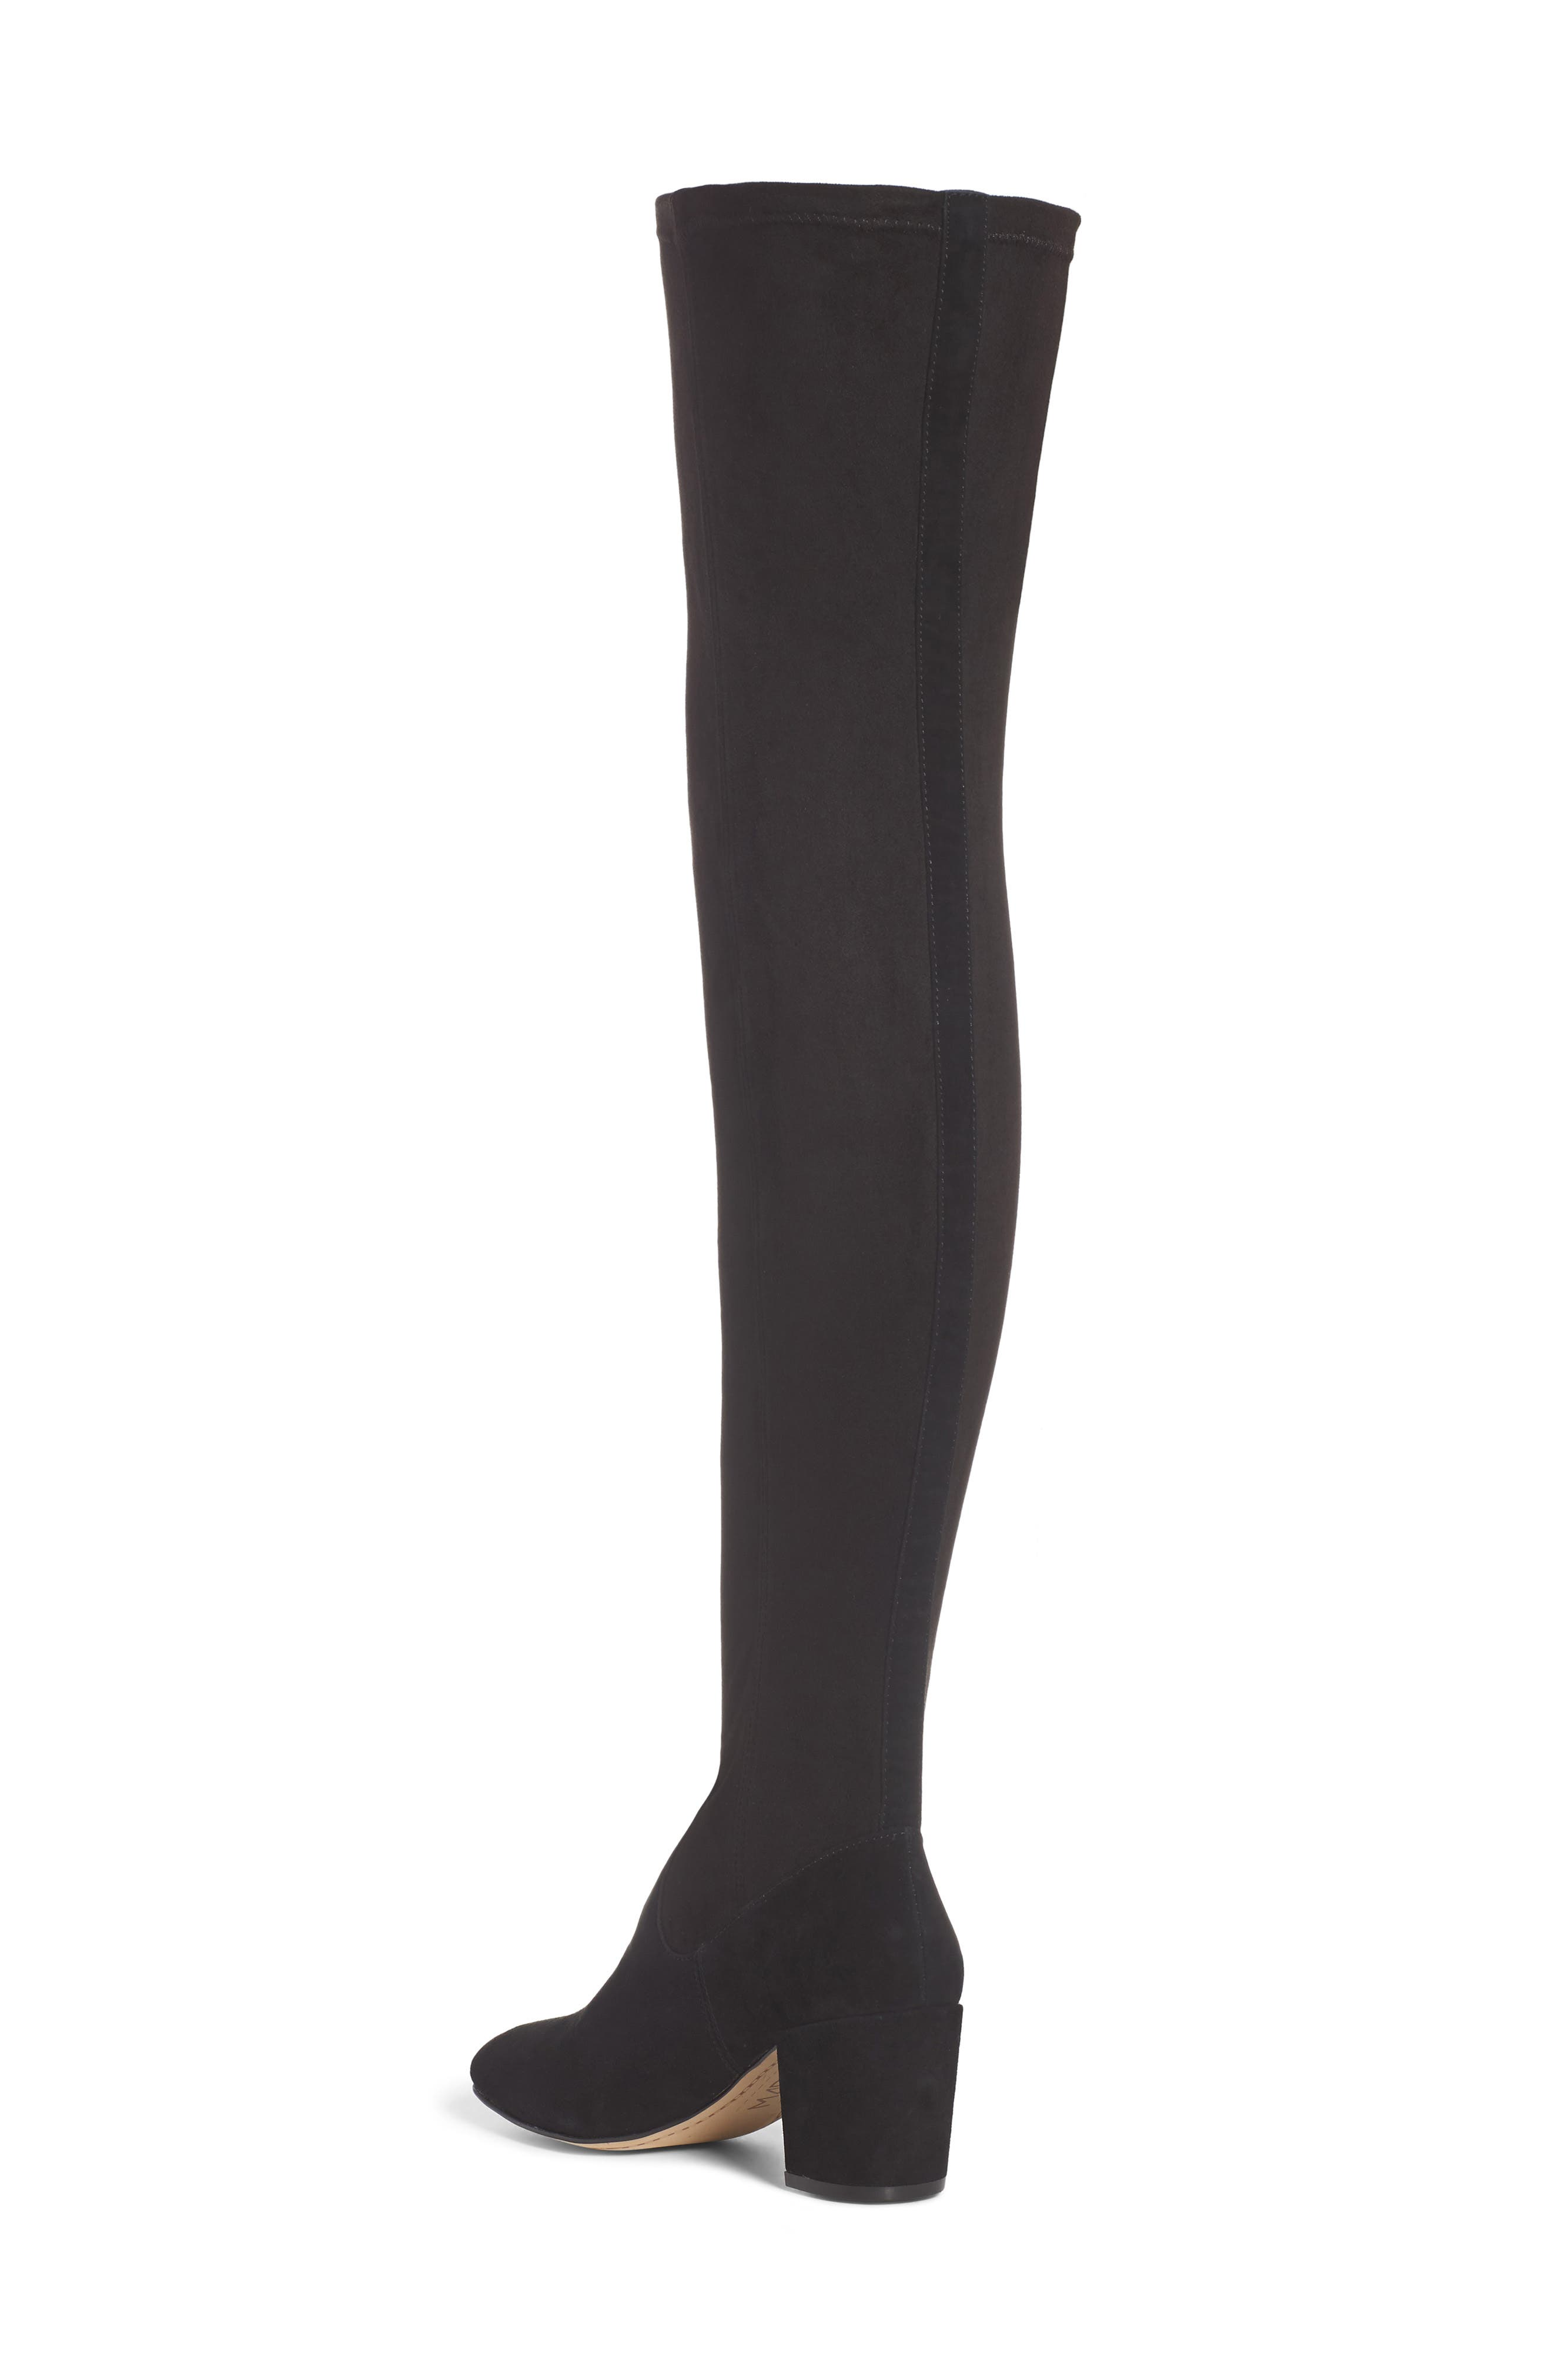 M4D3 Sobrina Over the Knee Boot,                             Alternate thumbnail 2, color,                             001